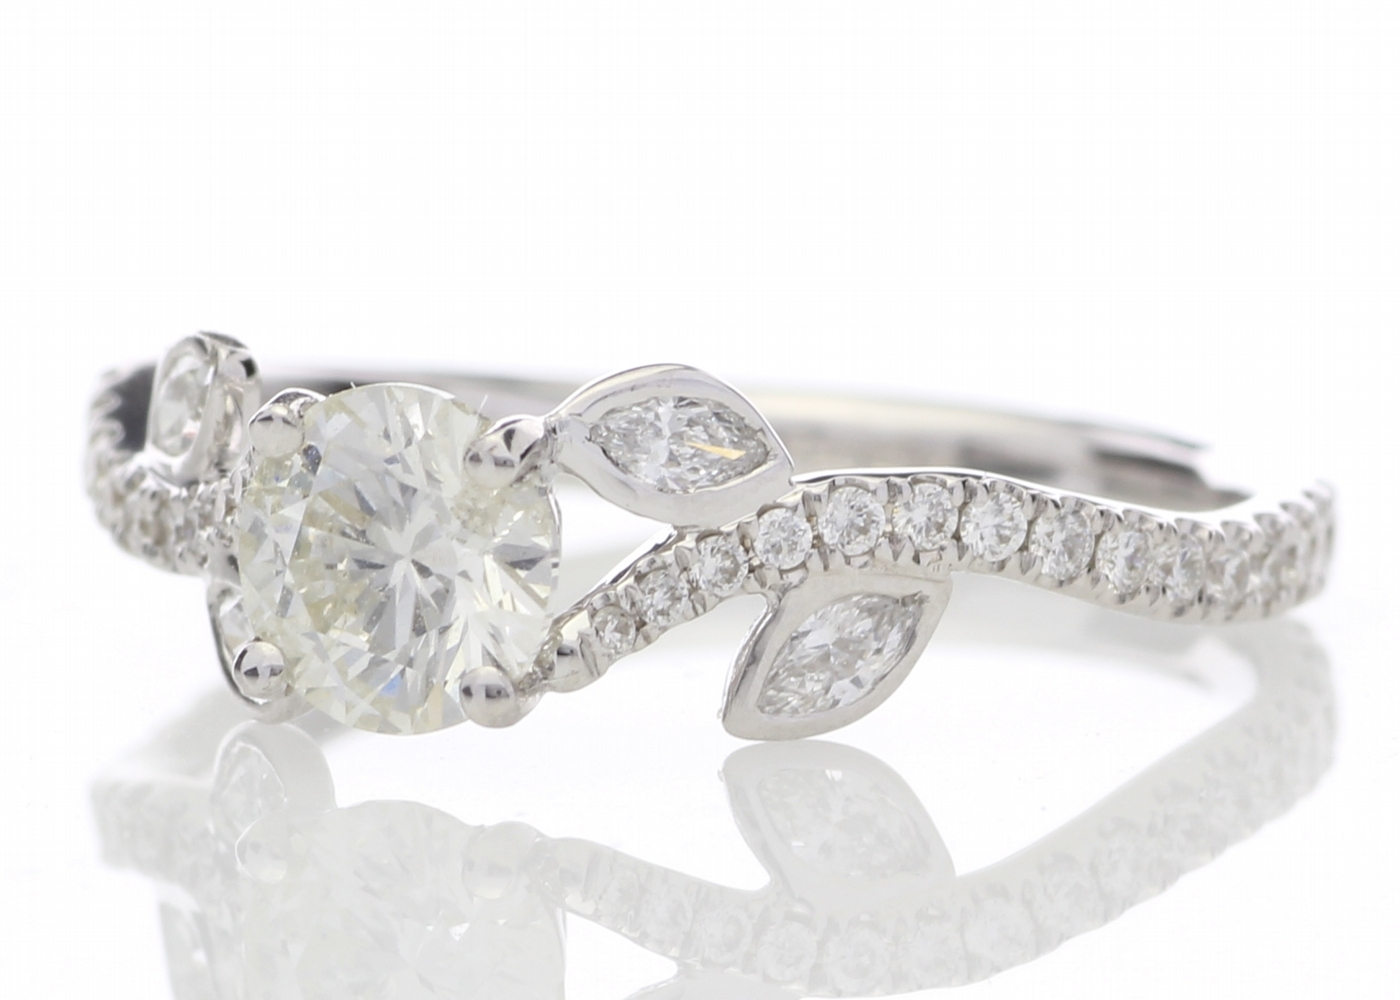 Lot 19 - 18ct White Gold Single Stone Diamond Ring With Stone Set Shoulders (0.55) 0.91 Carats